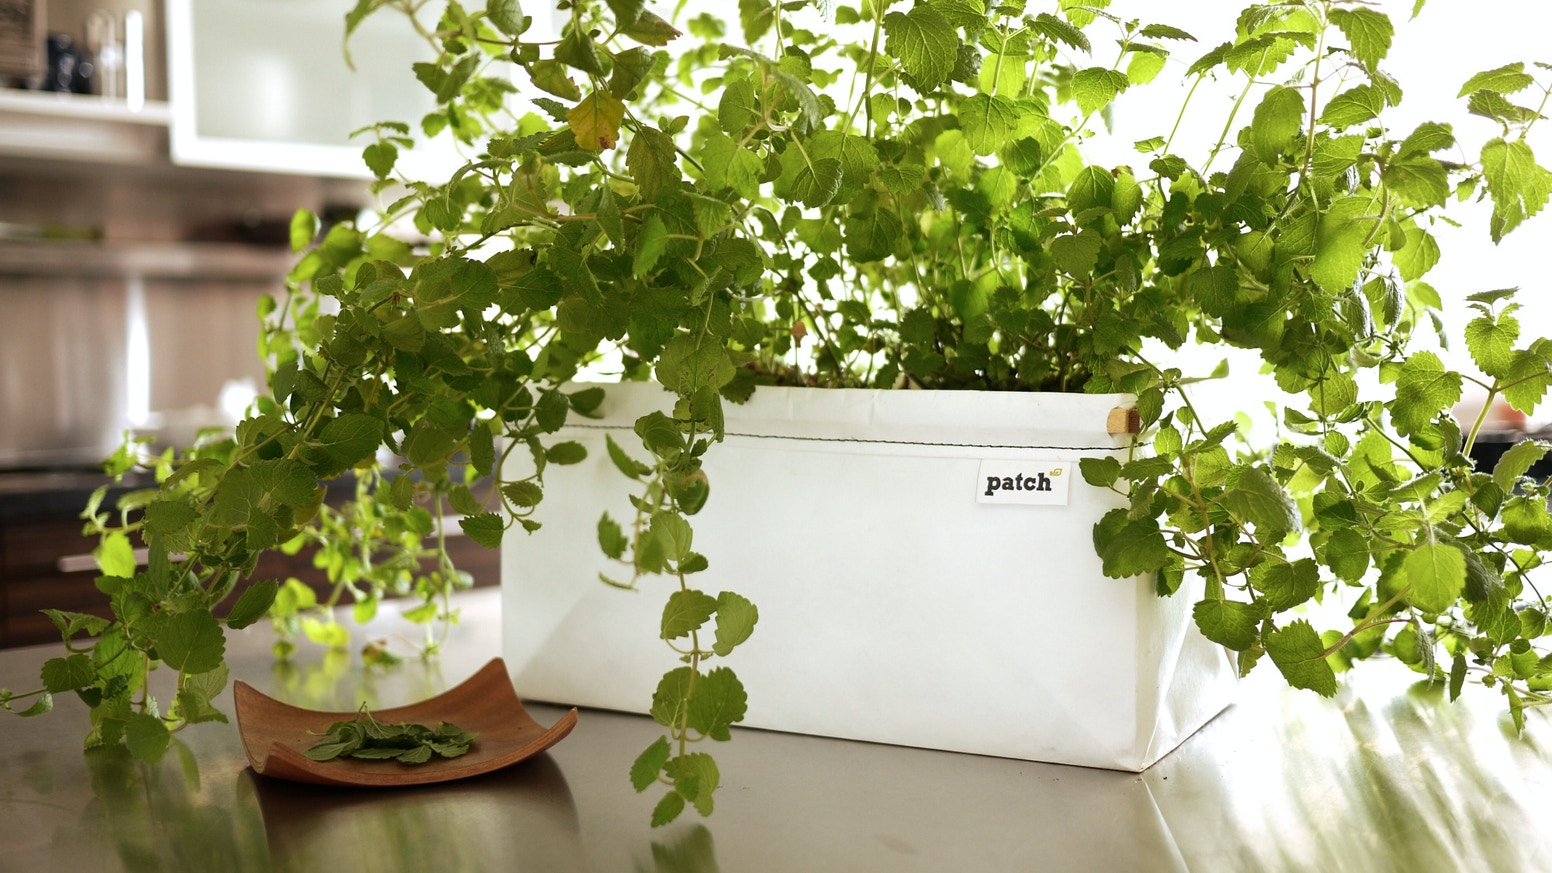 Let's Patch makes growing your own food easy. Self-watering and compact,  it's